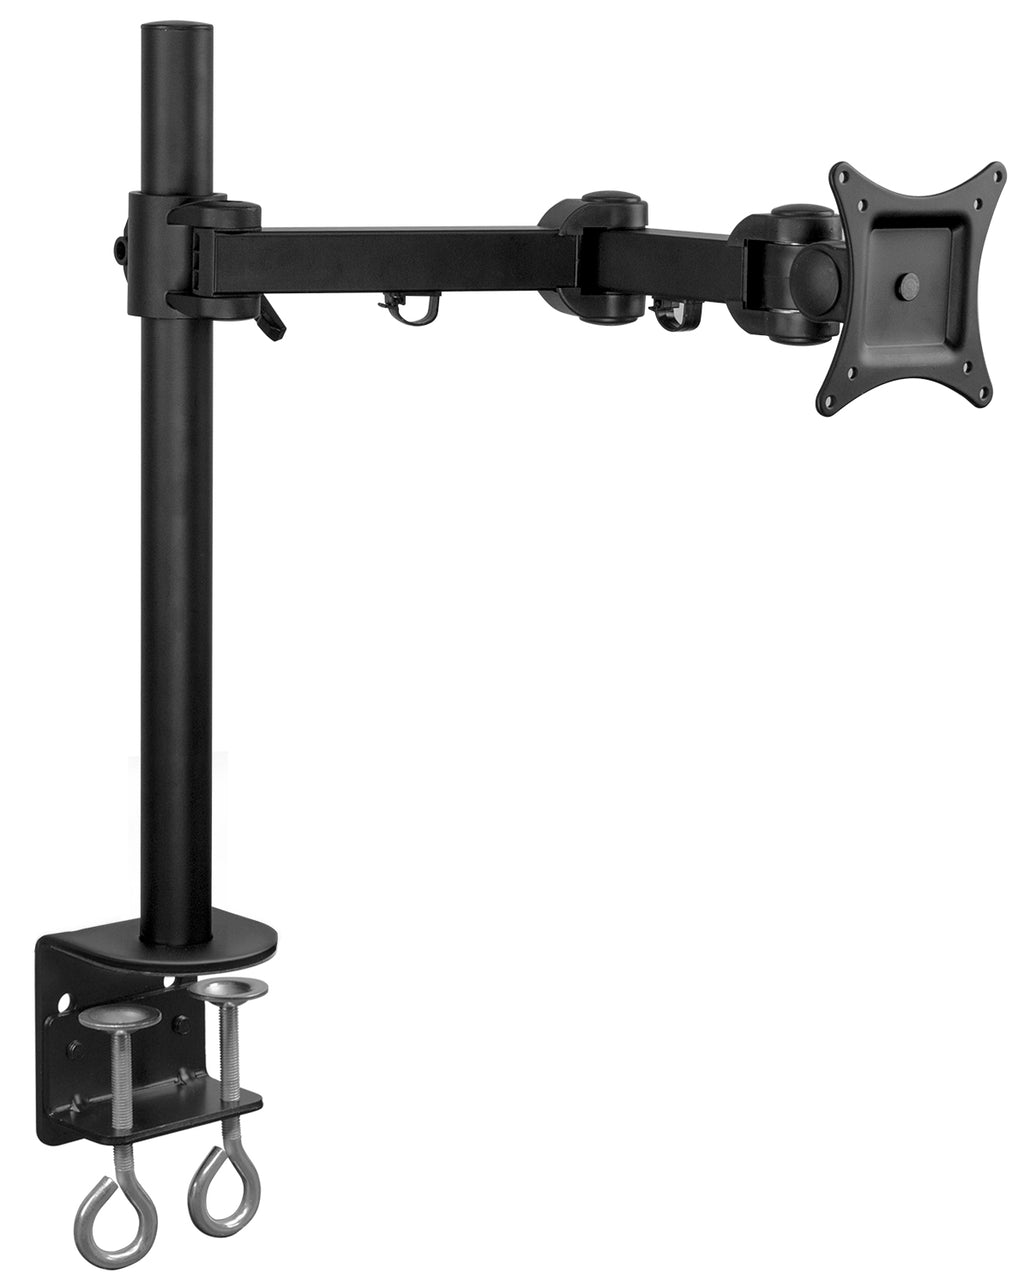 Mount-It! Single Arm Articulating TV/Monitor Desk Mount - Black - MI-751 - Mount-It!